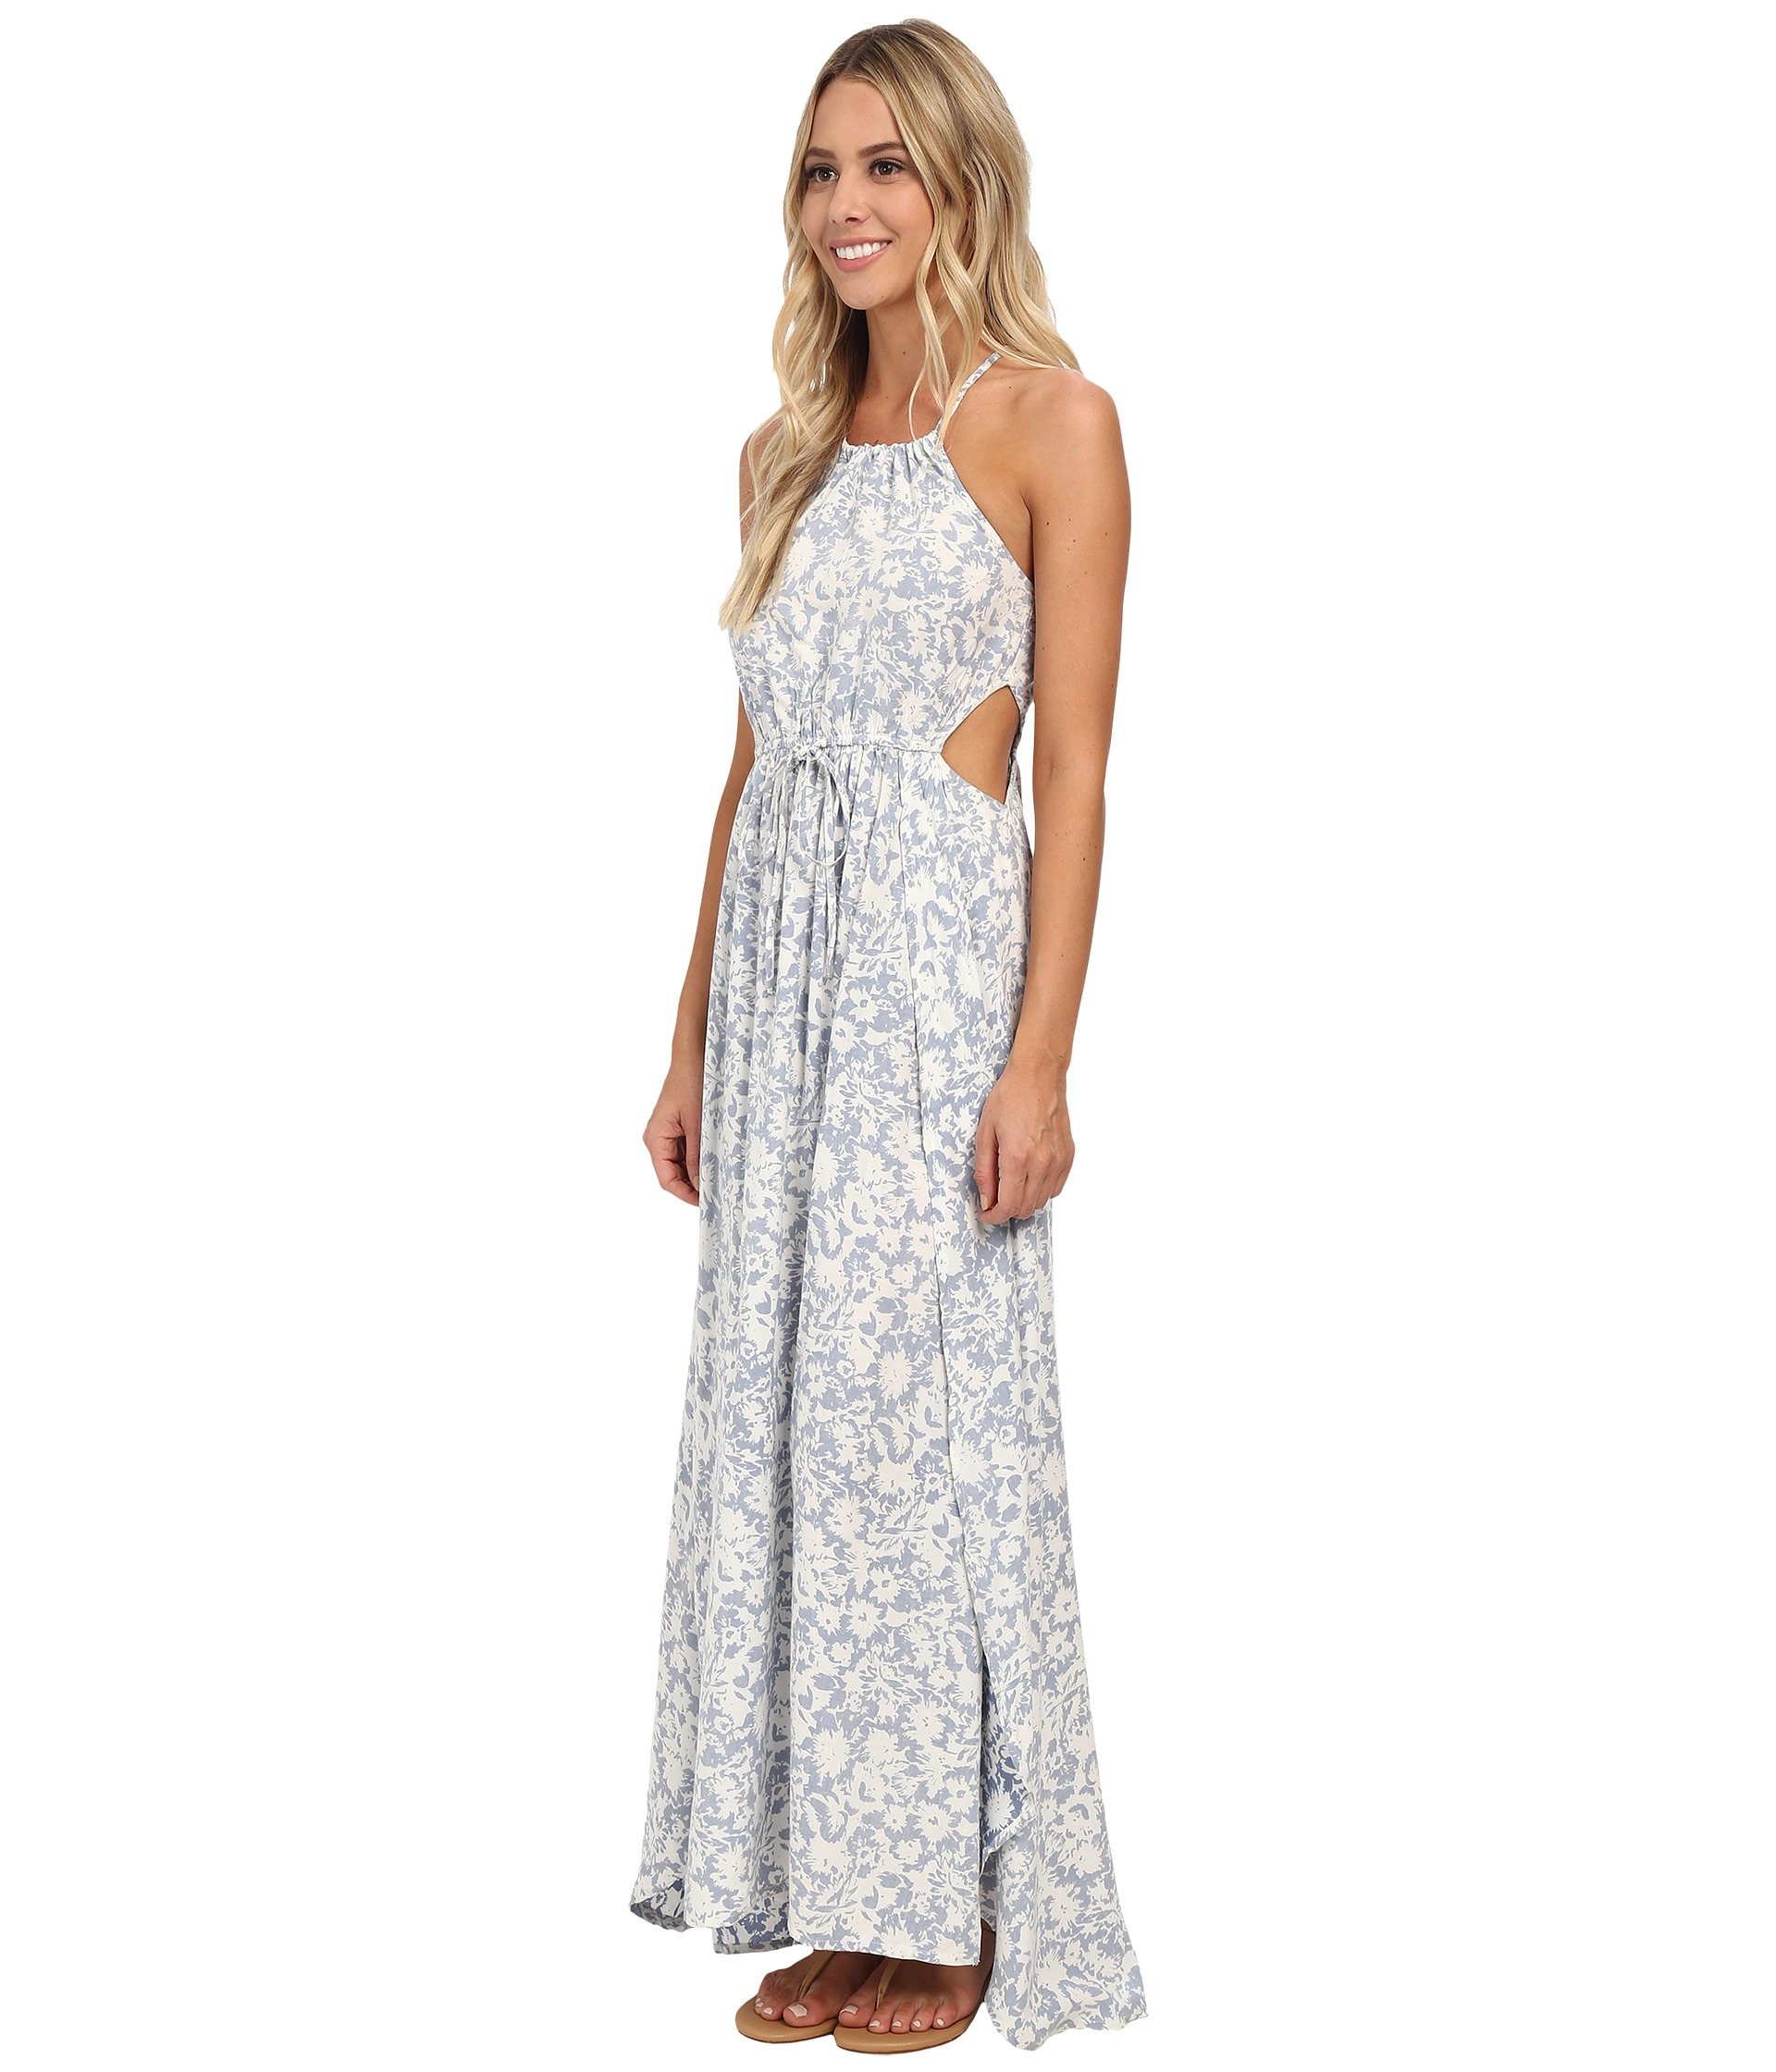 85dd1476a366 Lyst - Billabong Sounds Of The Sea Maxi Dress in Blue